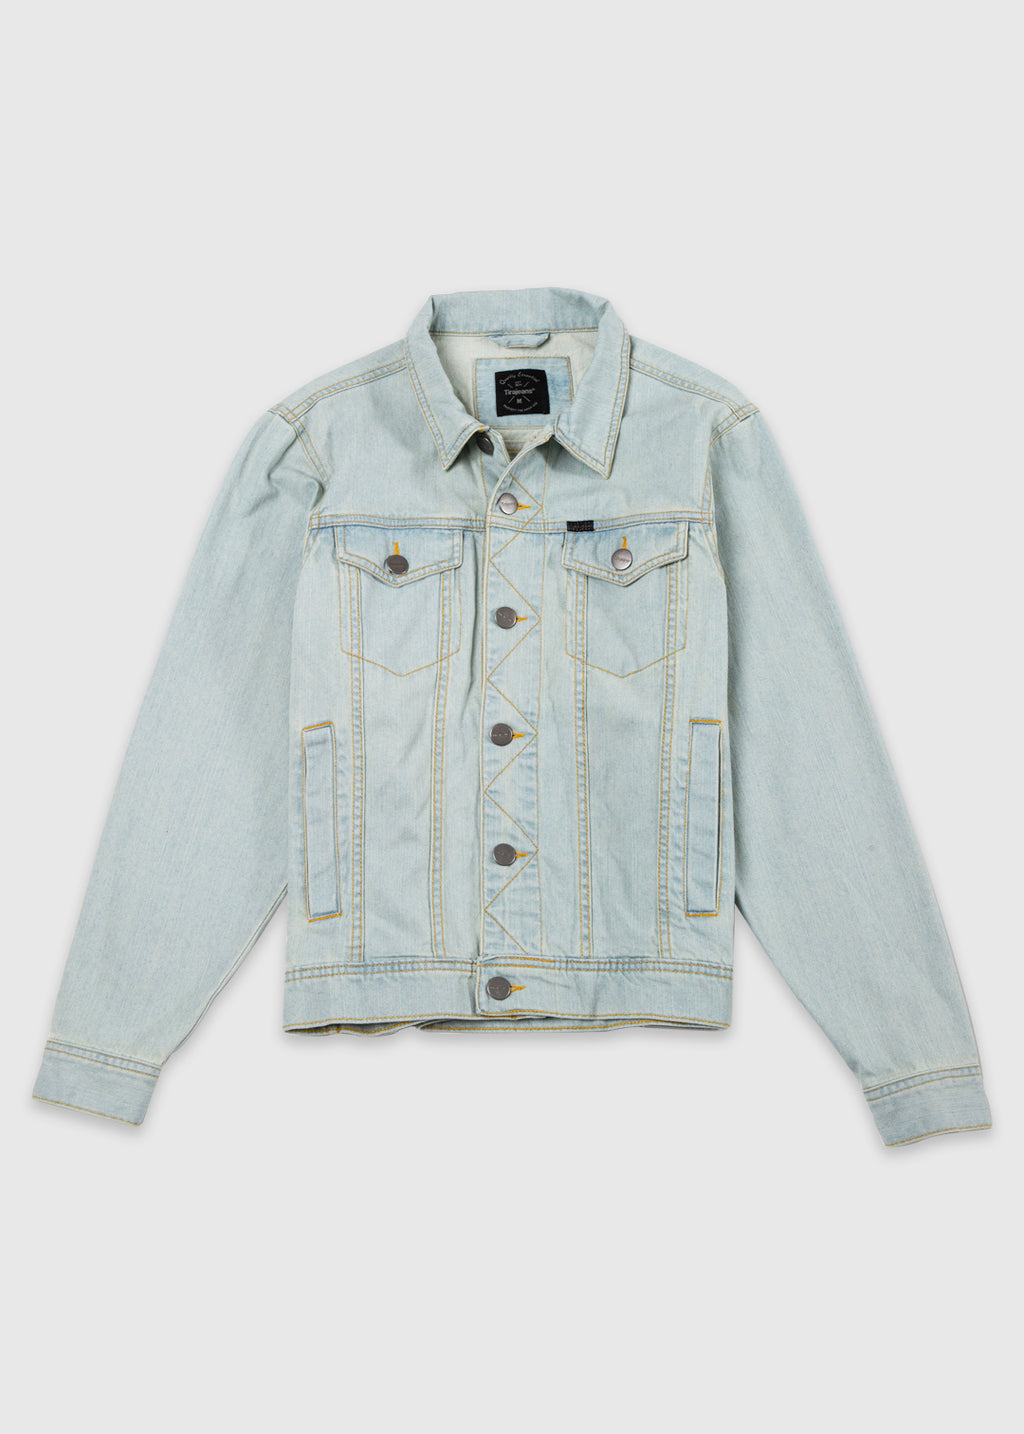 JACKET DENIM LT. BLUE SS20